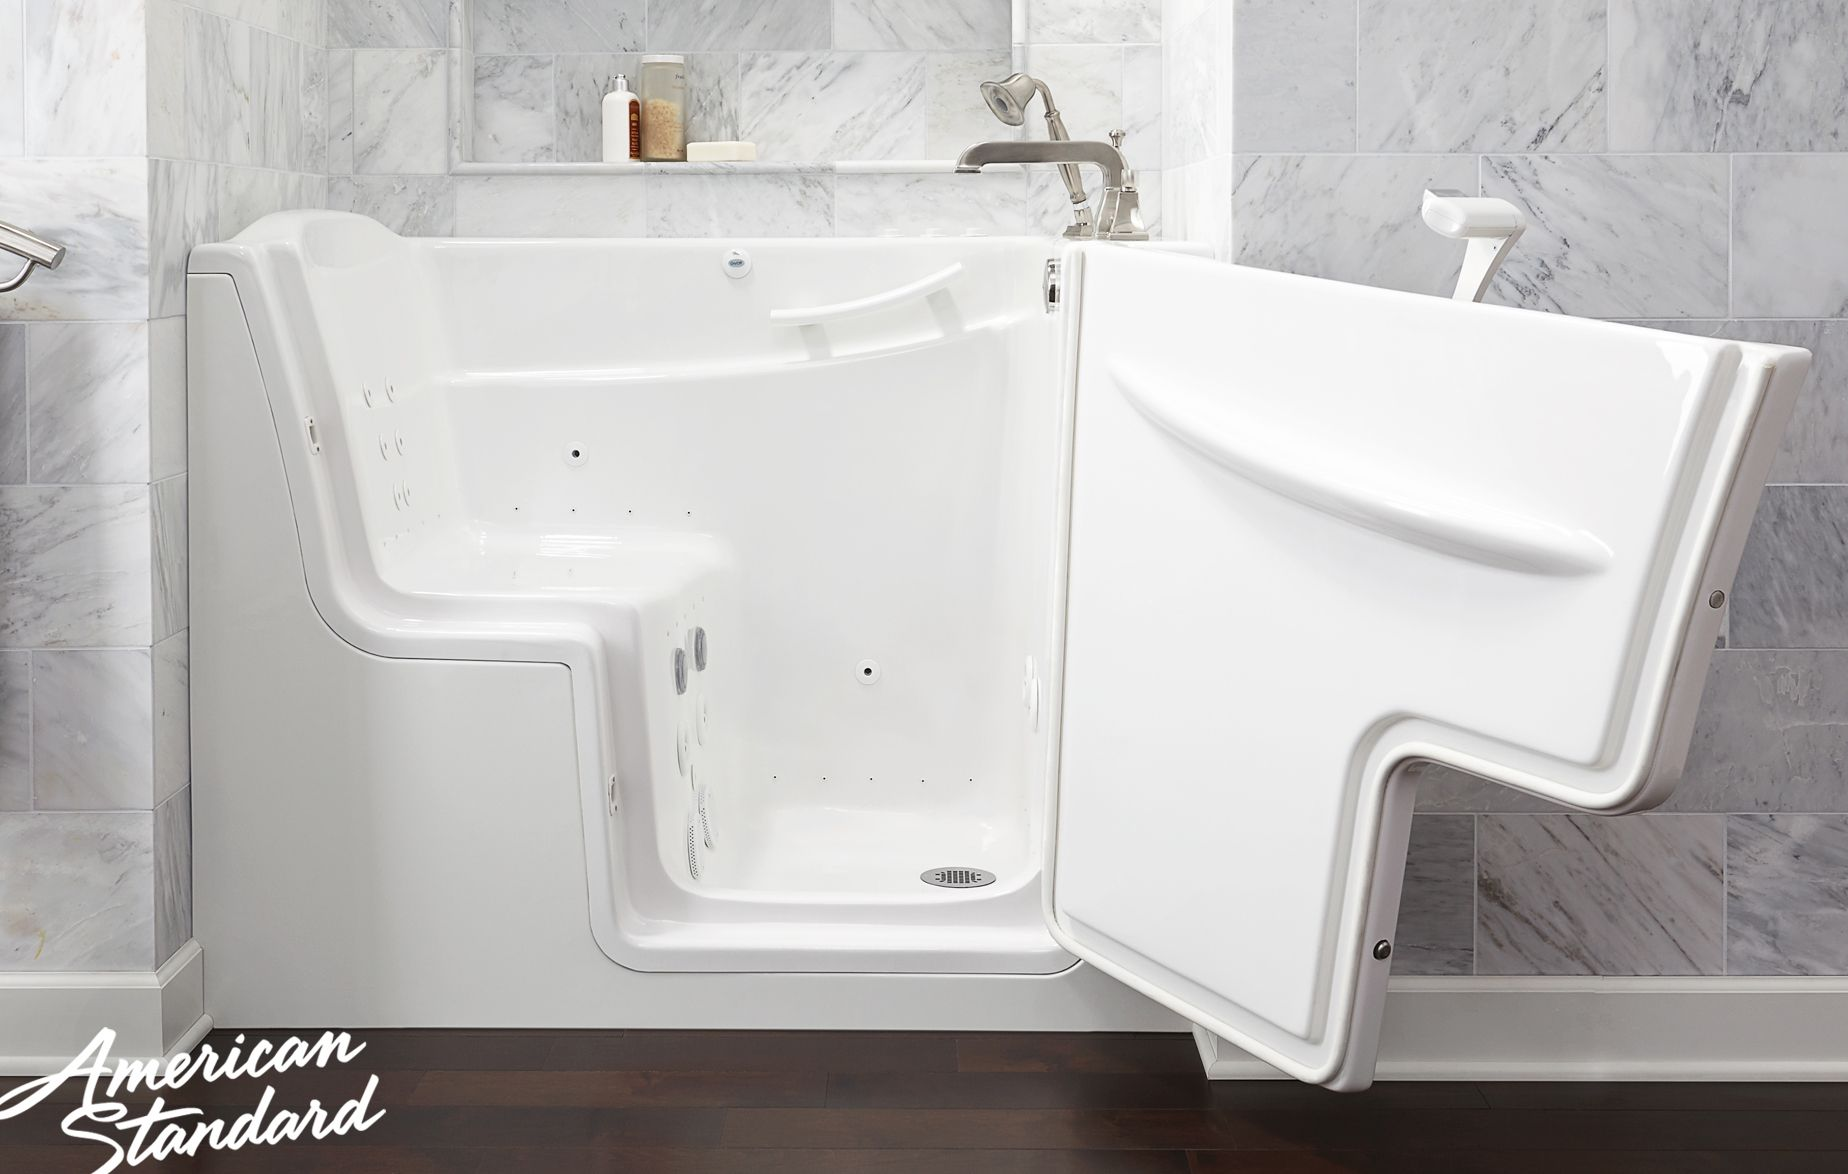 Keeping safety and style in mind, the American Standard Walk-in Bath ...